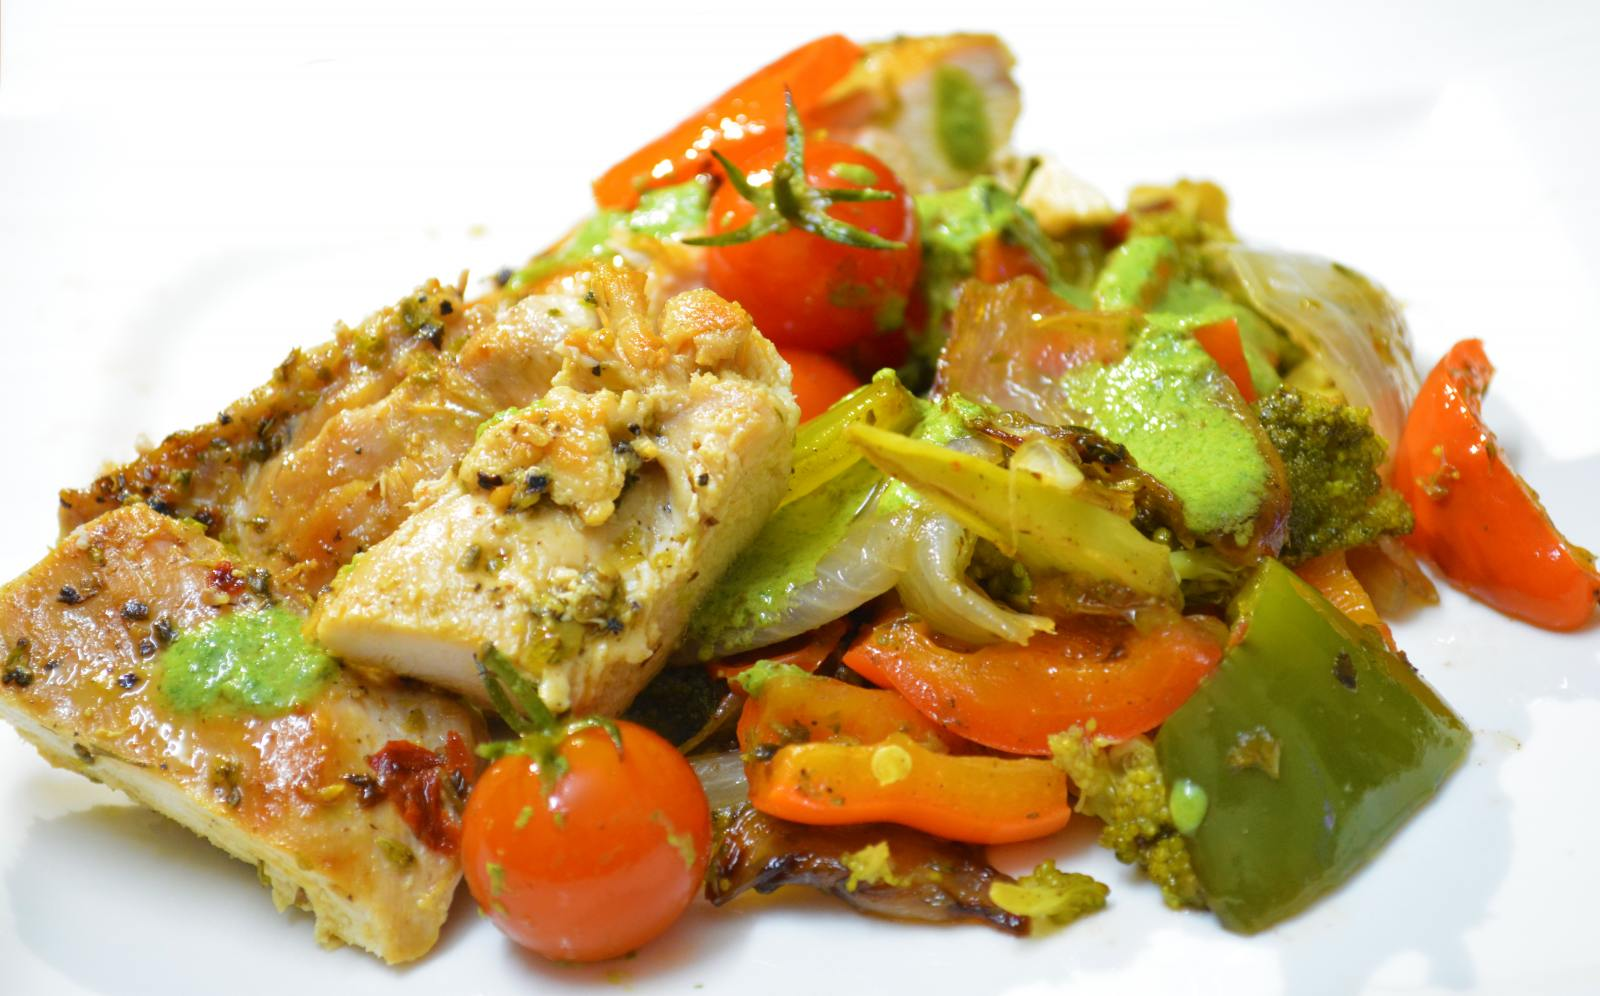 Grilled Chicken With Vegetables Recipe